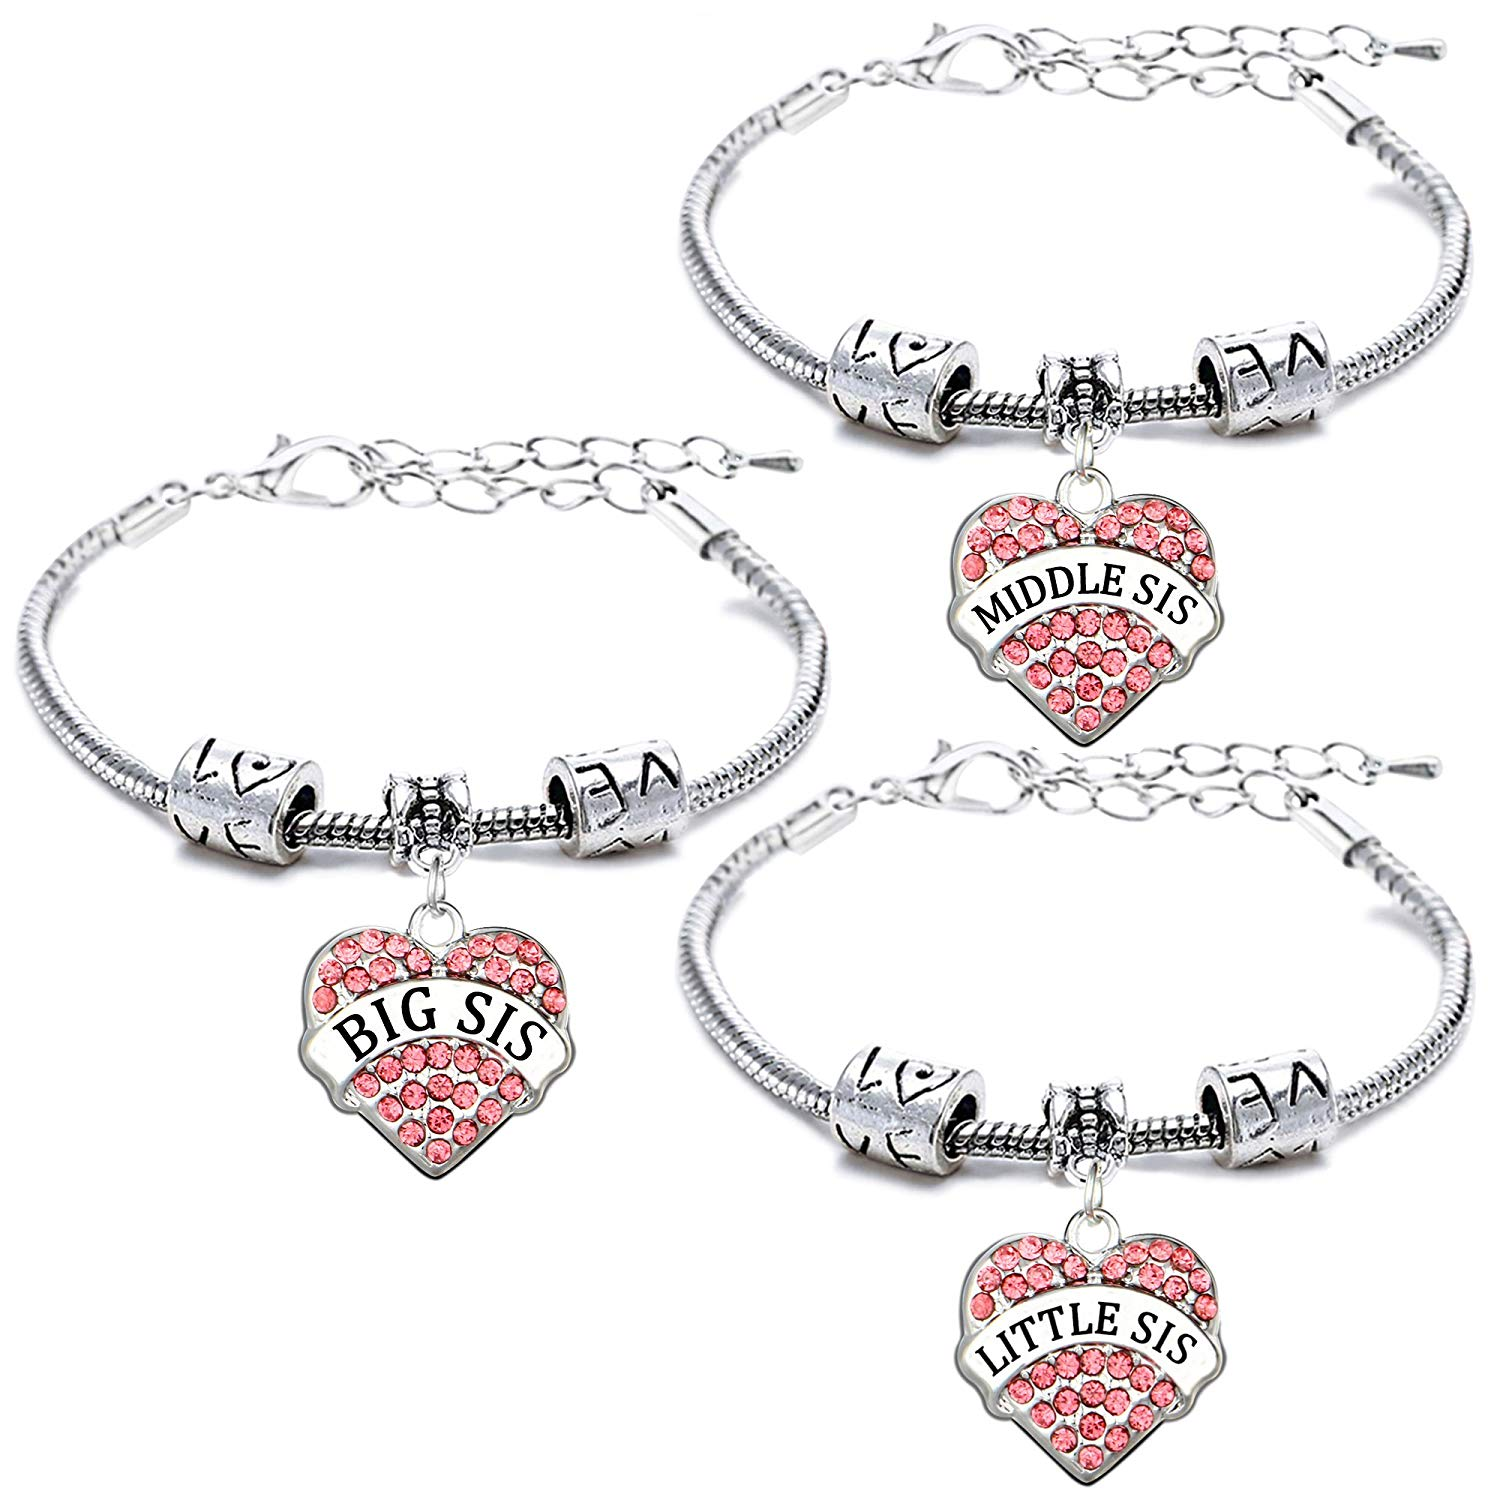 Inspired Silver Big Sis Celtic Knot Pave Heart Clear Cystal Charm Bracelet